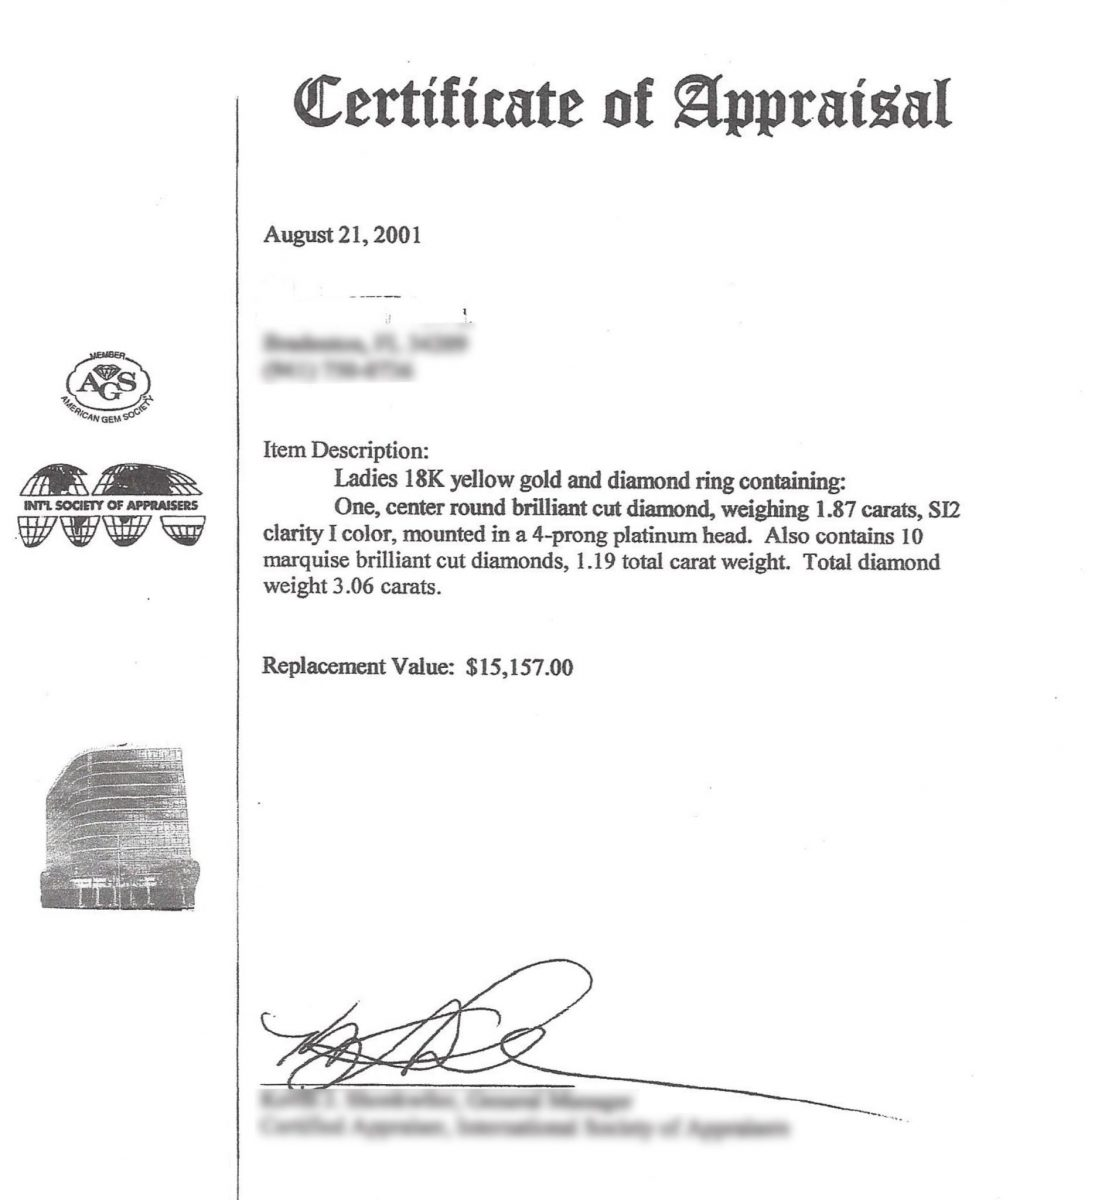 "This Guy (Had to Fuzz His Name and Info) States on This Document He is a G.G. and is an Appraiser. He is Not! His ""Appraisal"" Displays his Membership in ISA and AGS. (International Society of Appraisers, and American Gem Society). He is Not a Member!"